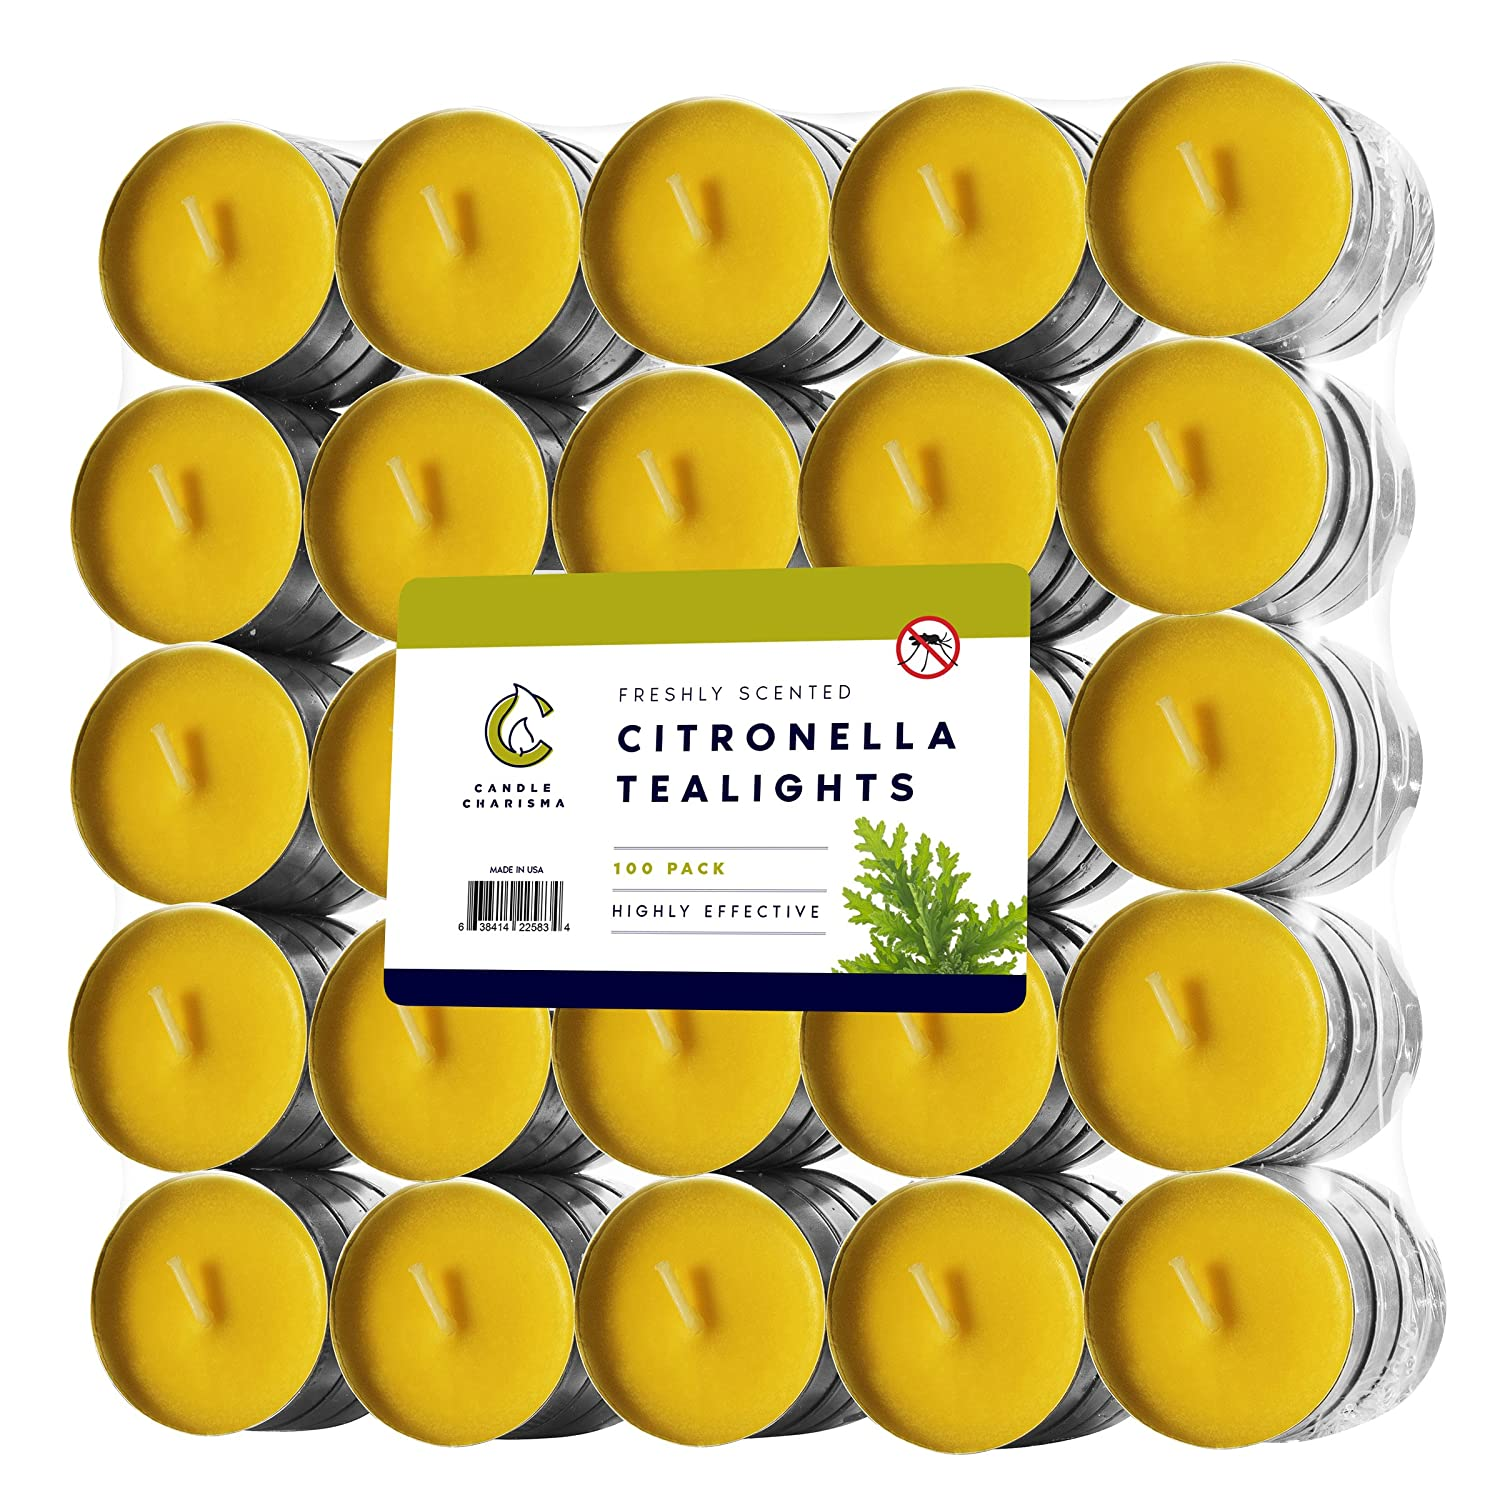 100 Citronella Oil Wax Tealight Candles Bulk - Mosquito Repellent - Deet Free - Yellow - Outdoor Indoor - Summer Candles - Made in USA Candle Charisma